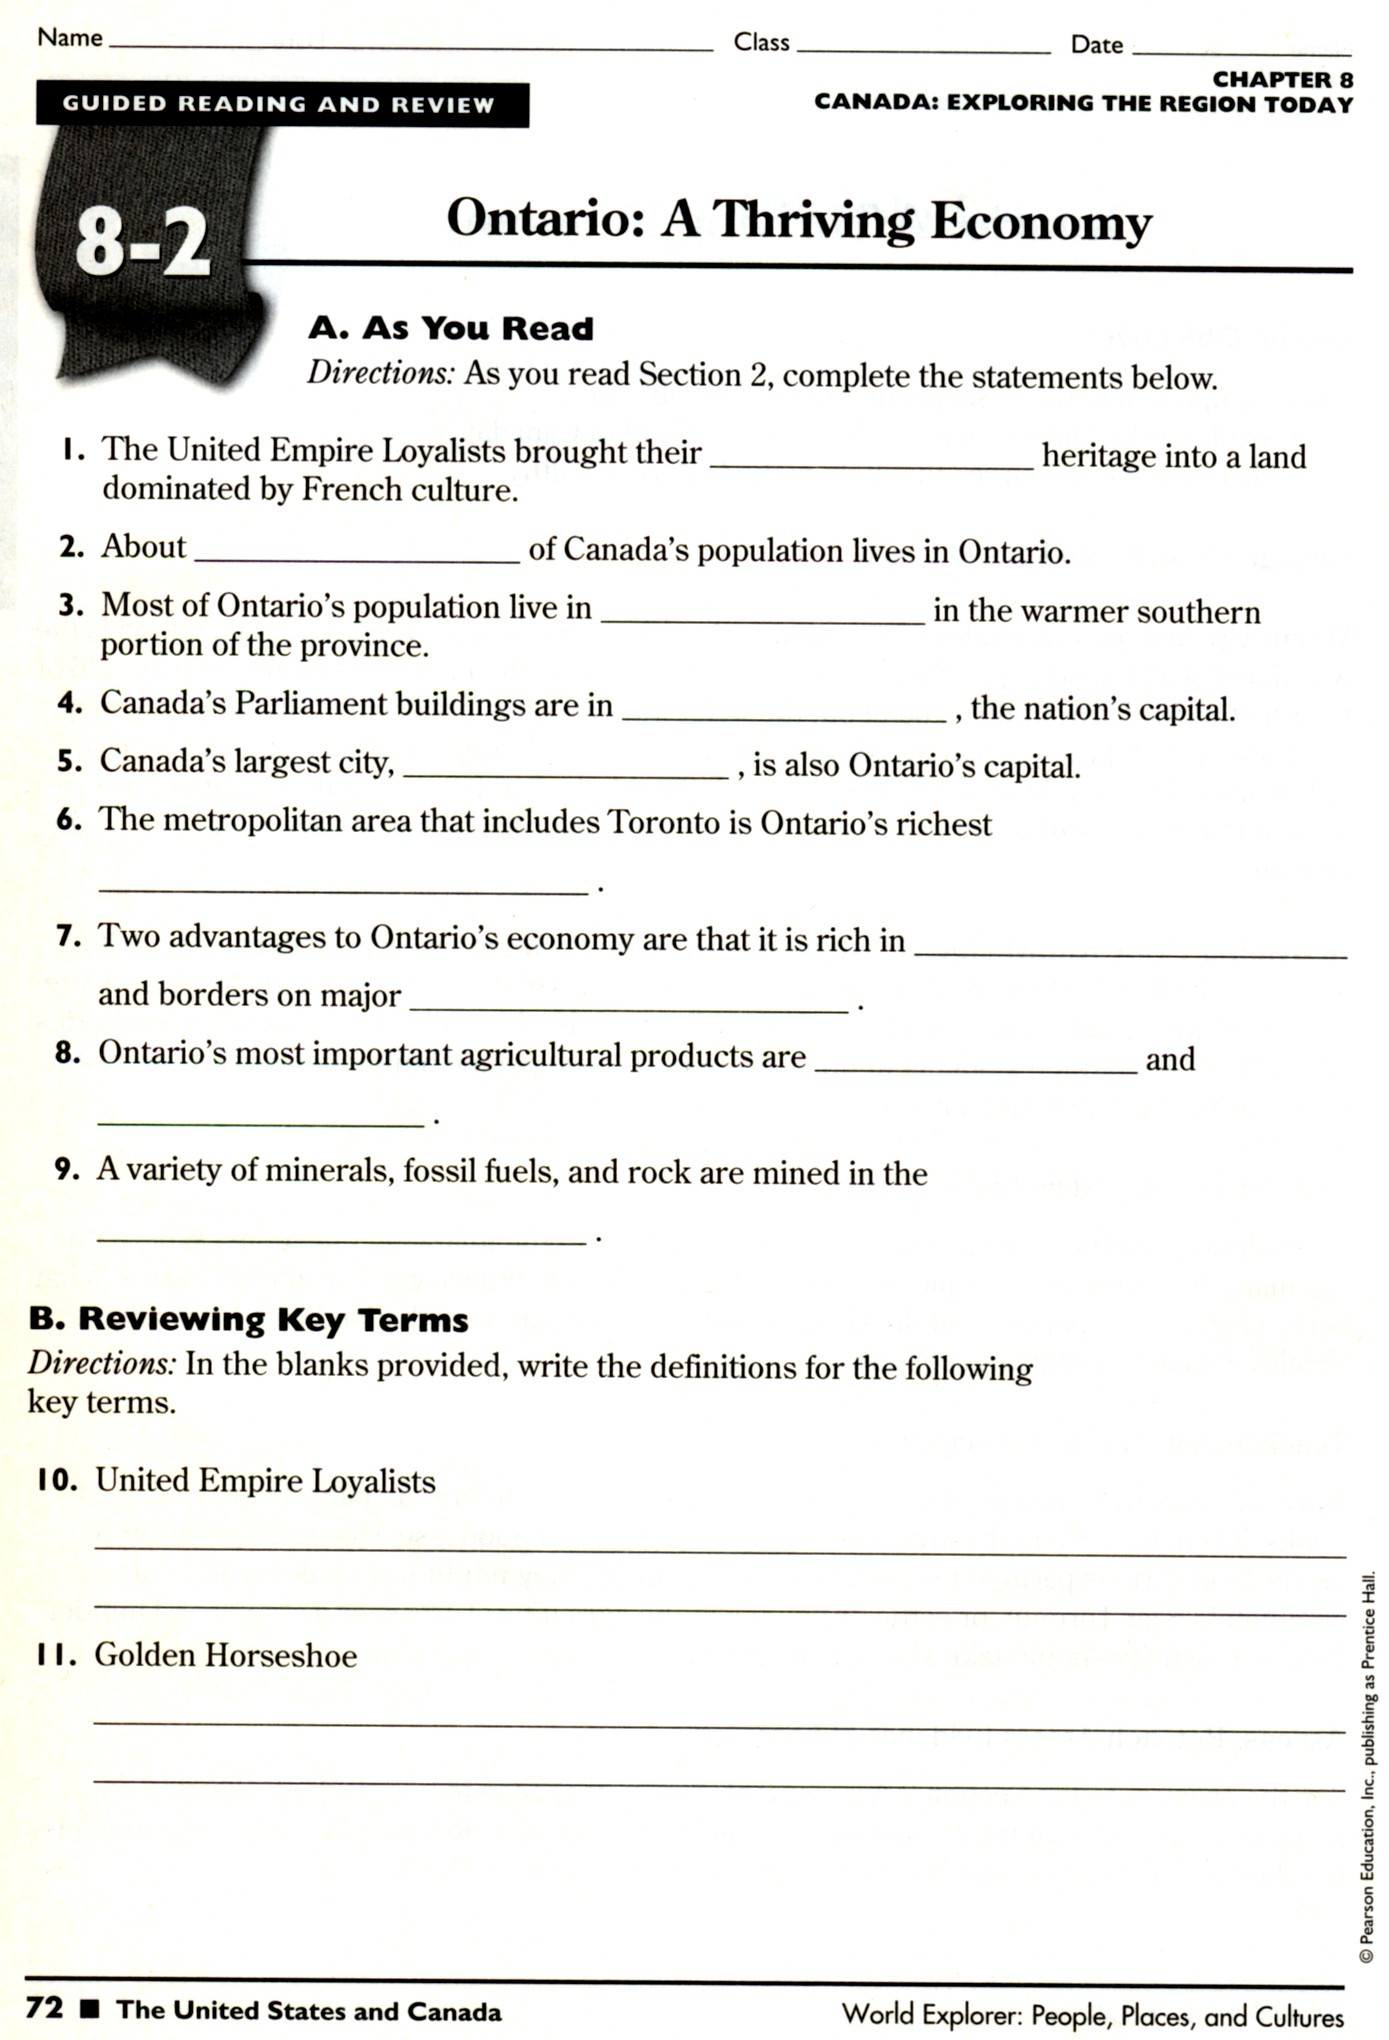 7th Grade World History Worksheets Physical Geography the United States and Canada Worksheet